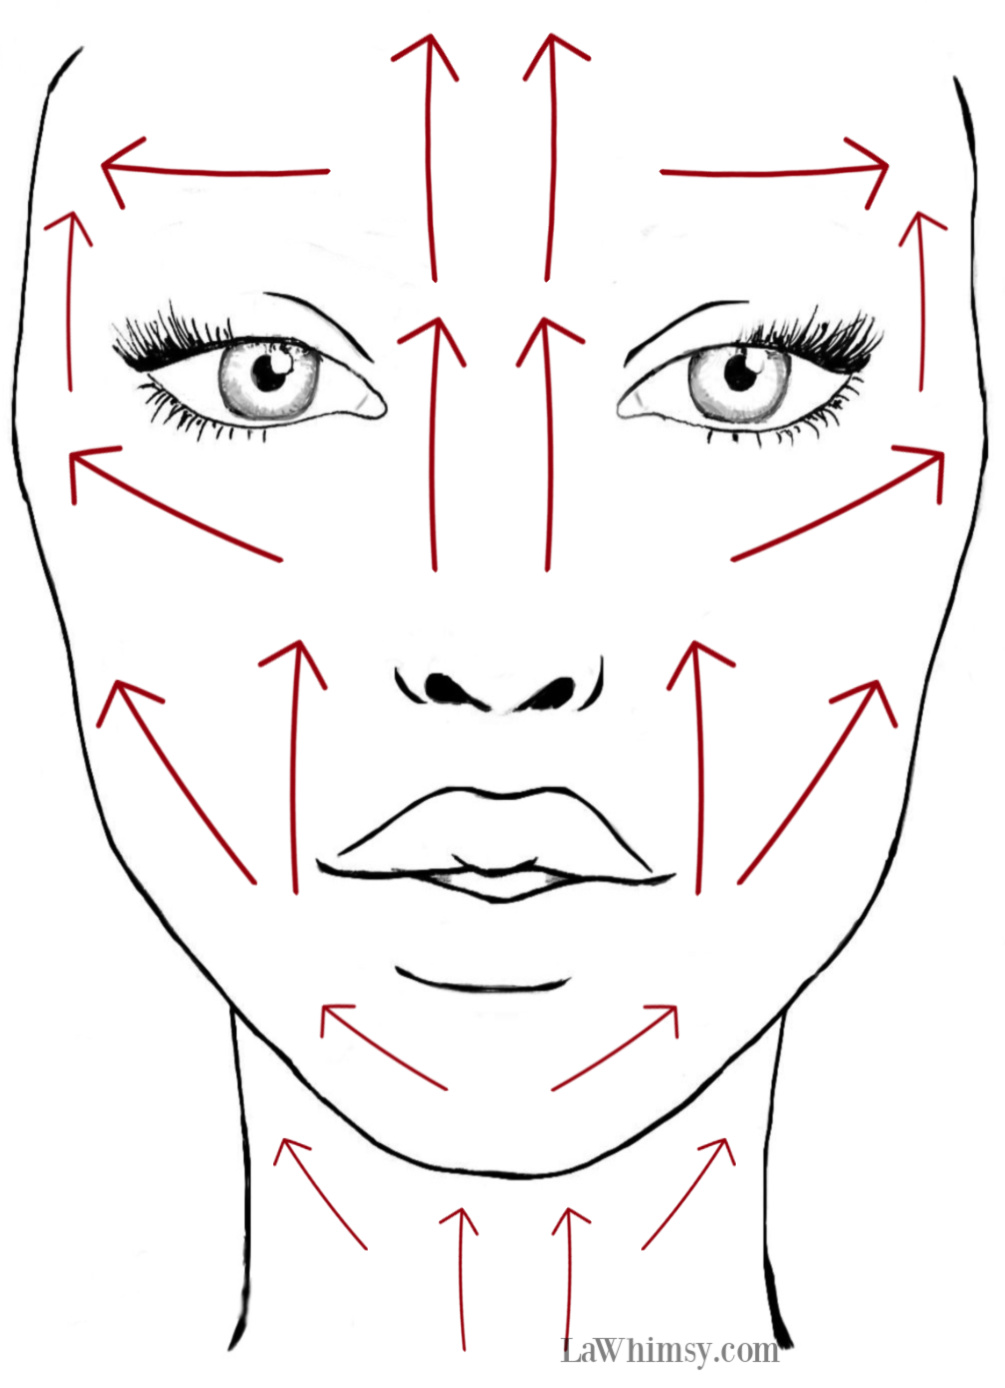 Jade Rolling Facial Rolling Guide Map via LaWhimsy